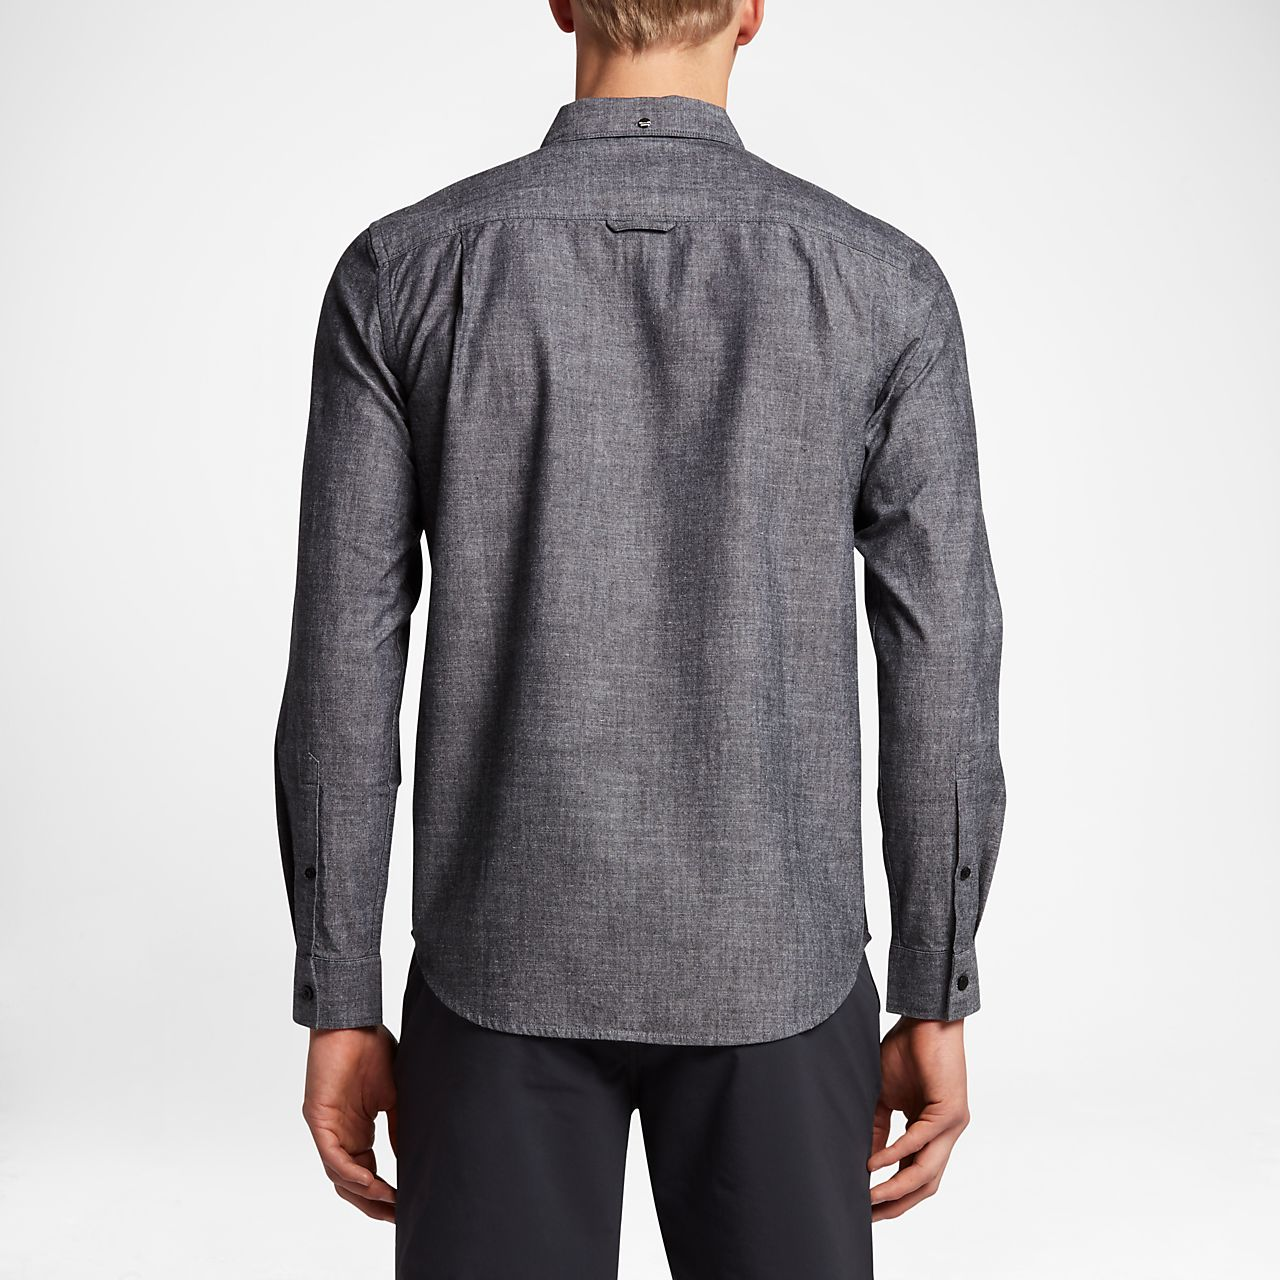 ... Hurley One and Only 3.0 Men's Long Sleeve Shirt